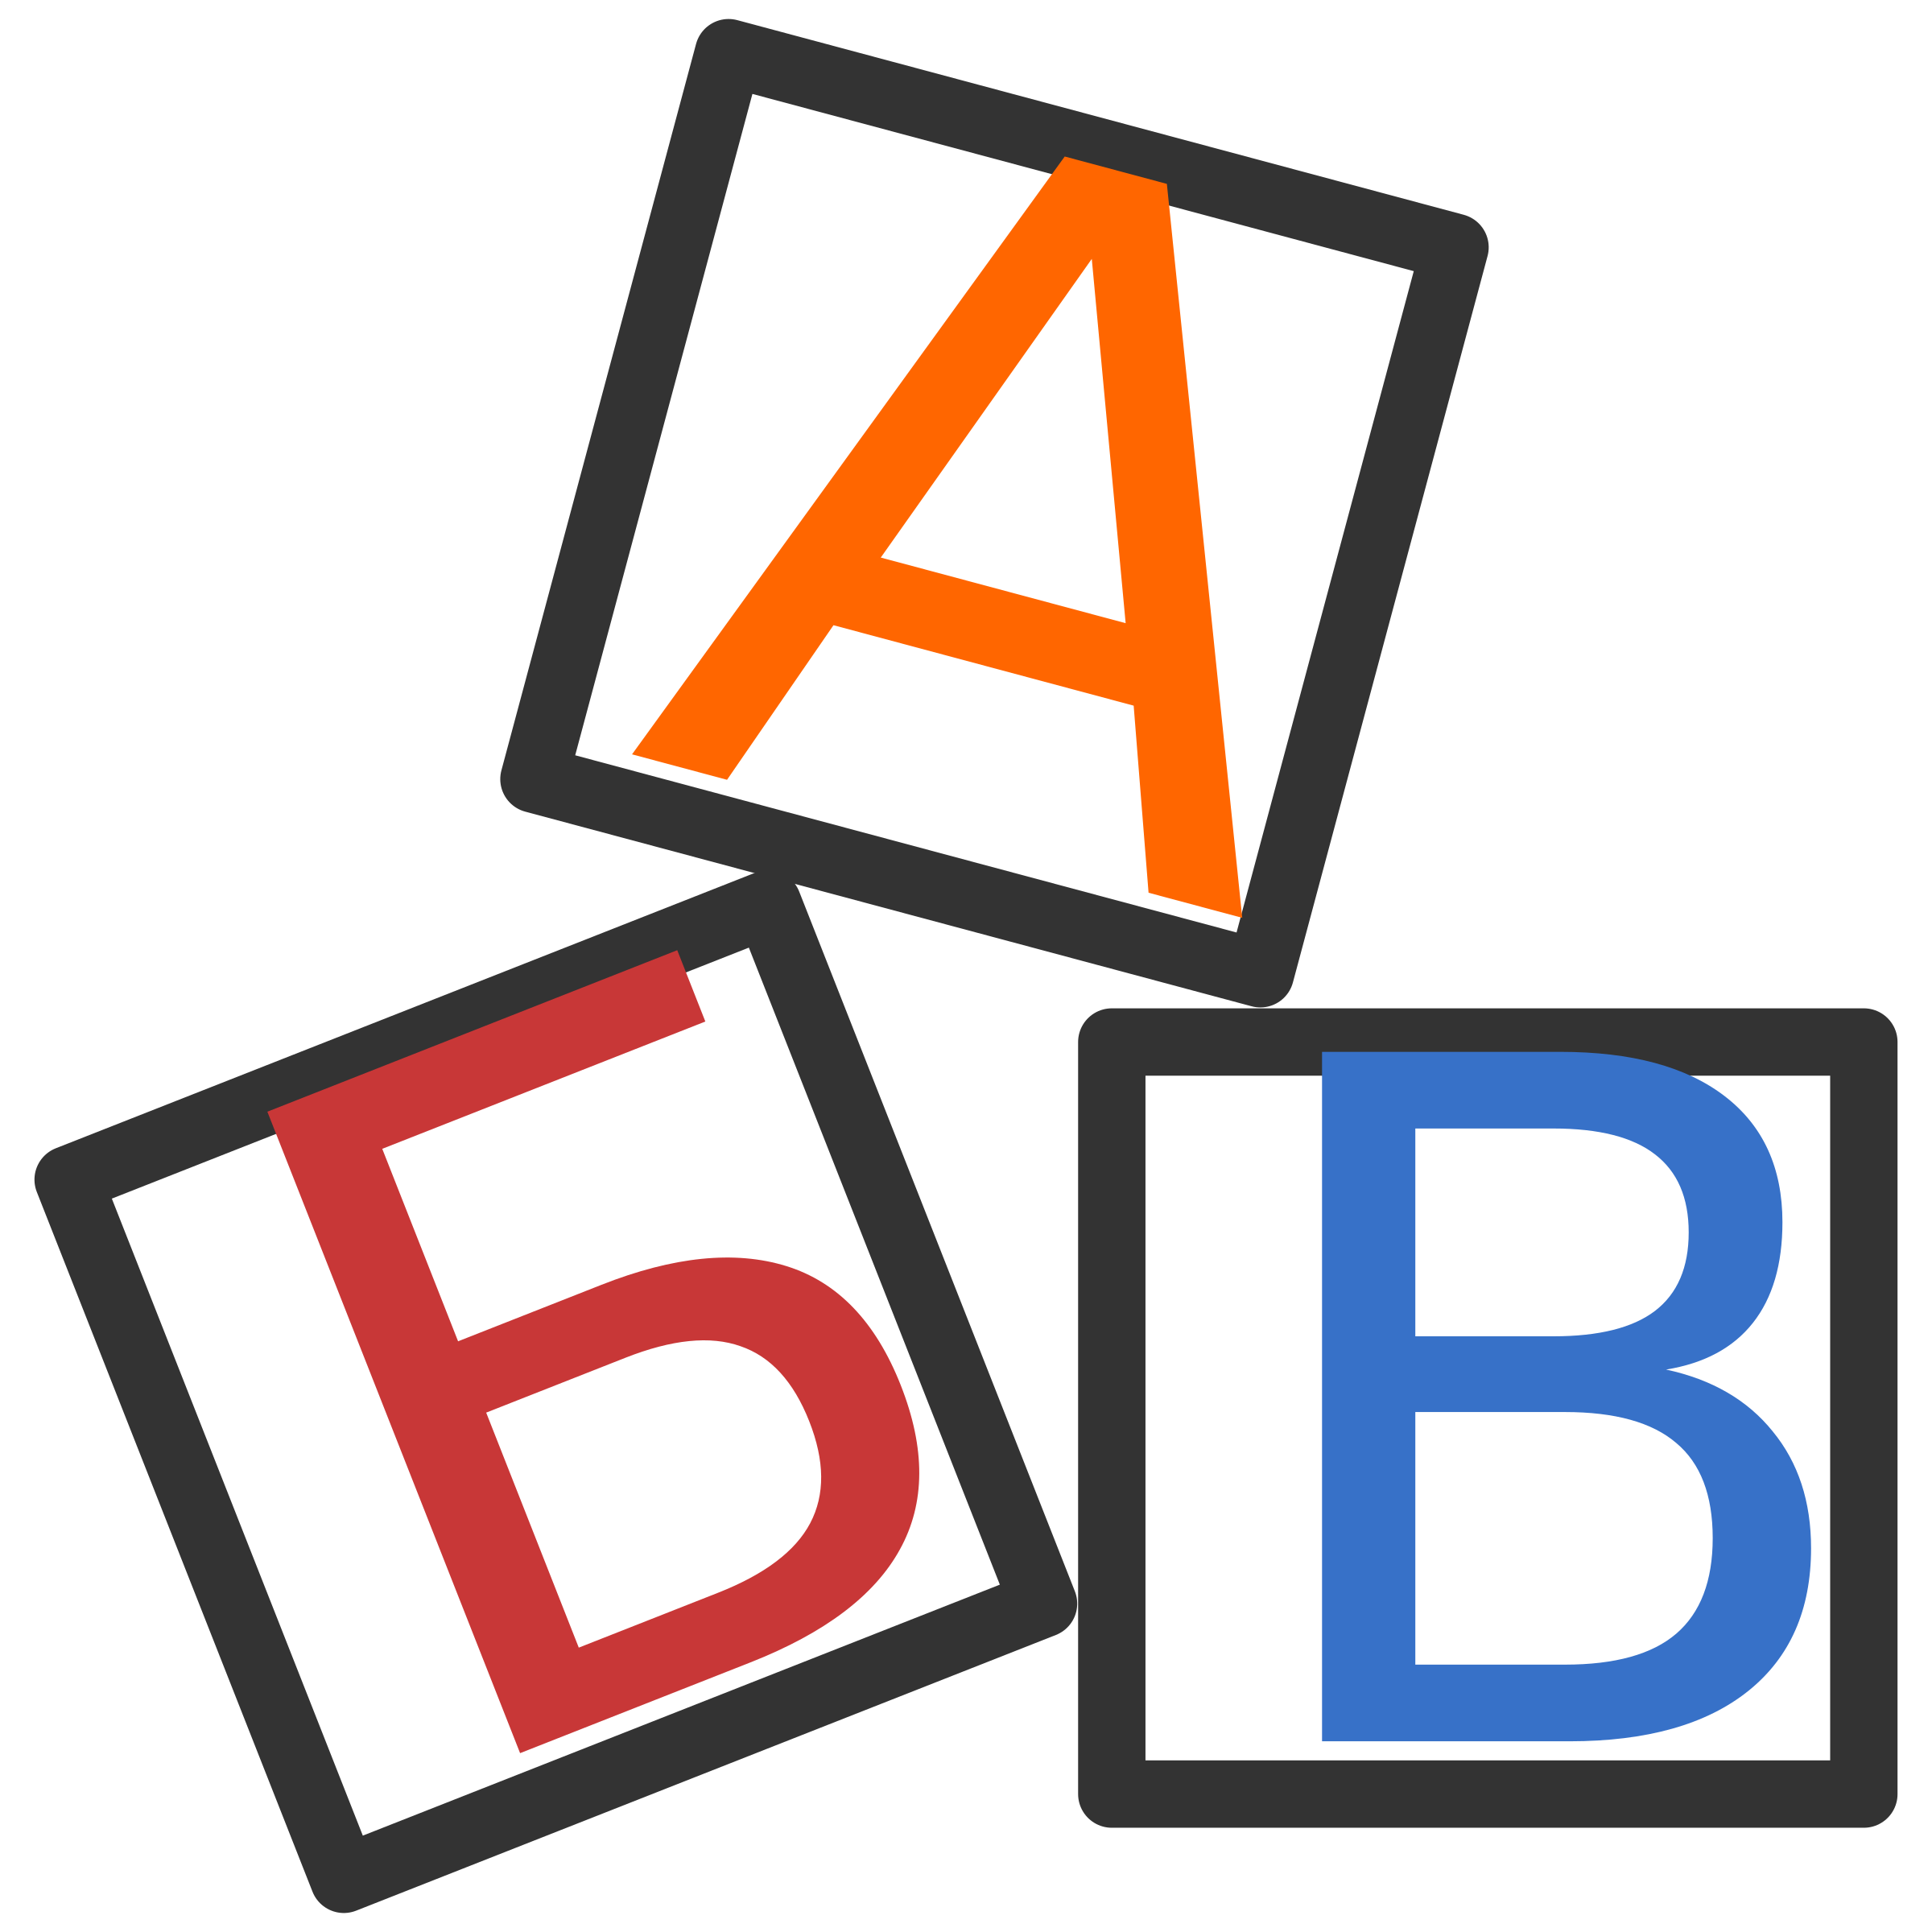 ABC  by lunick